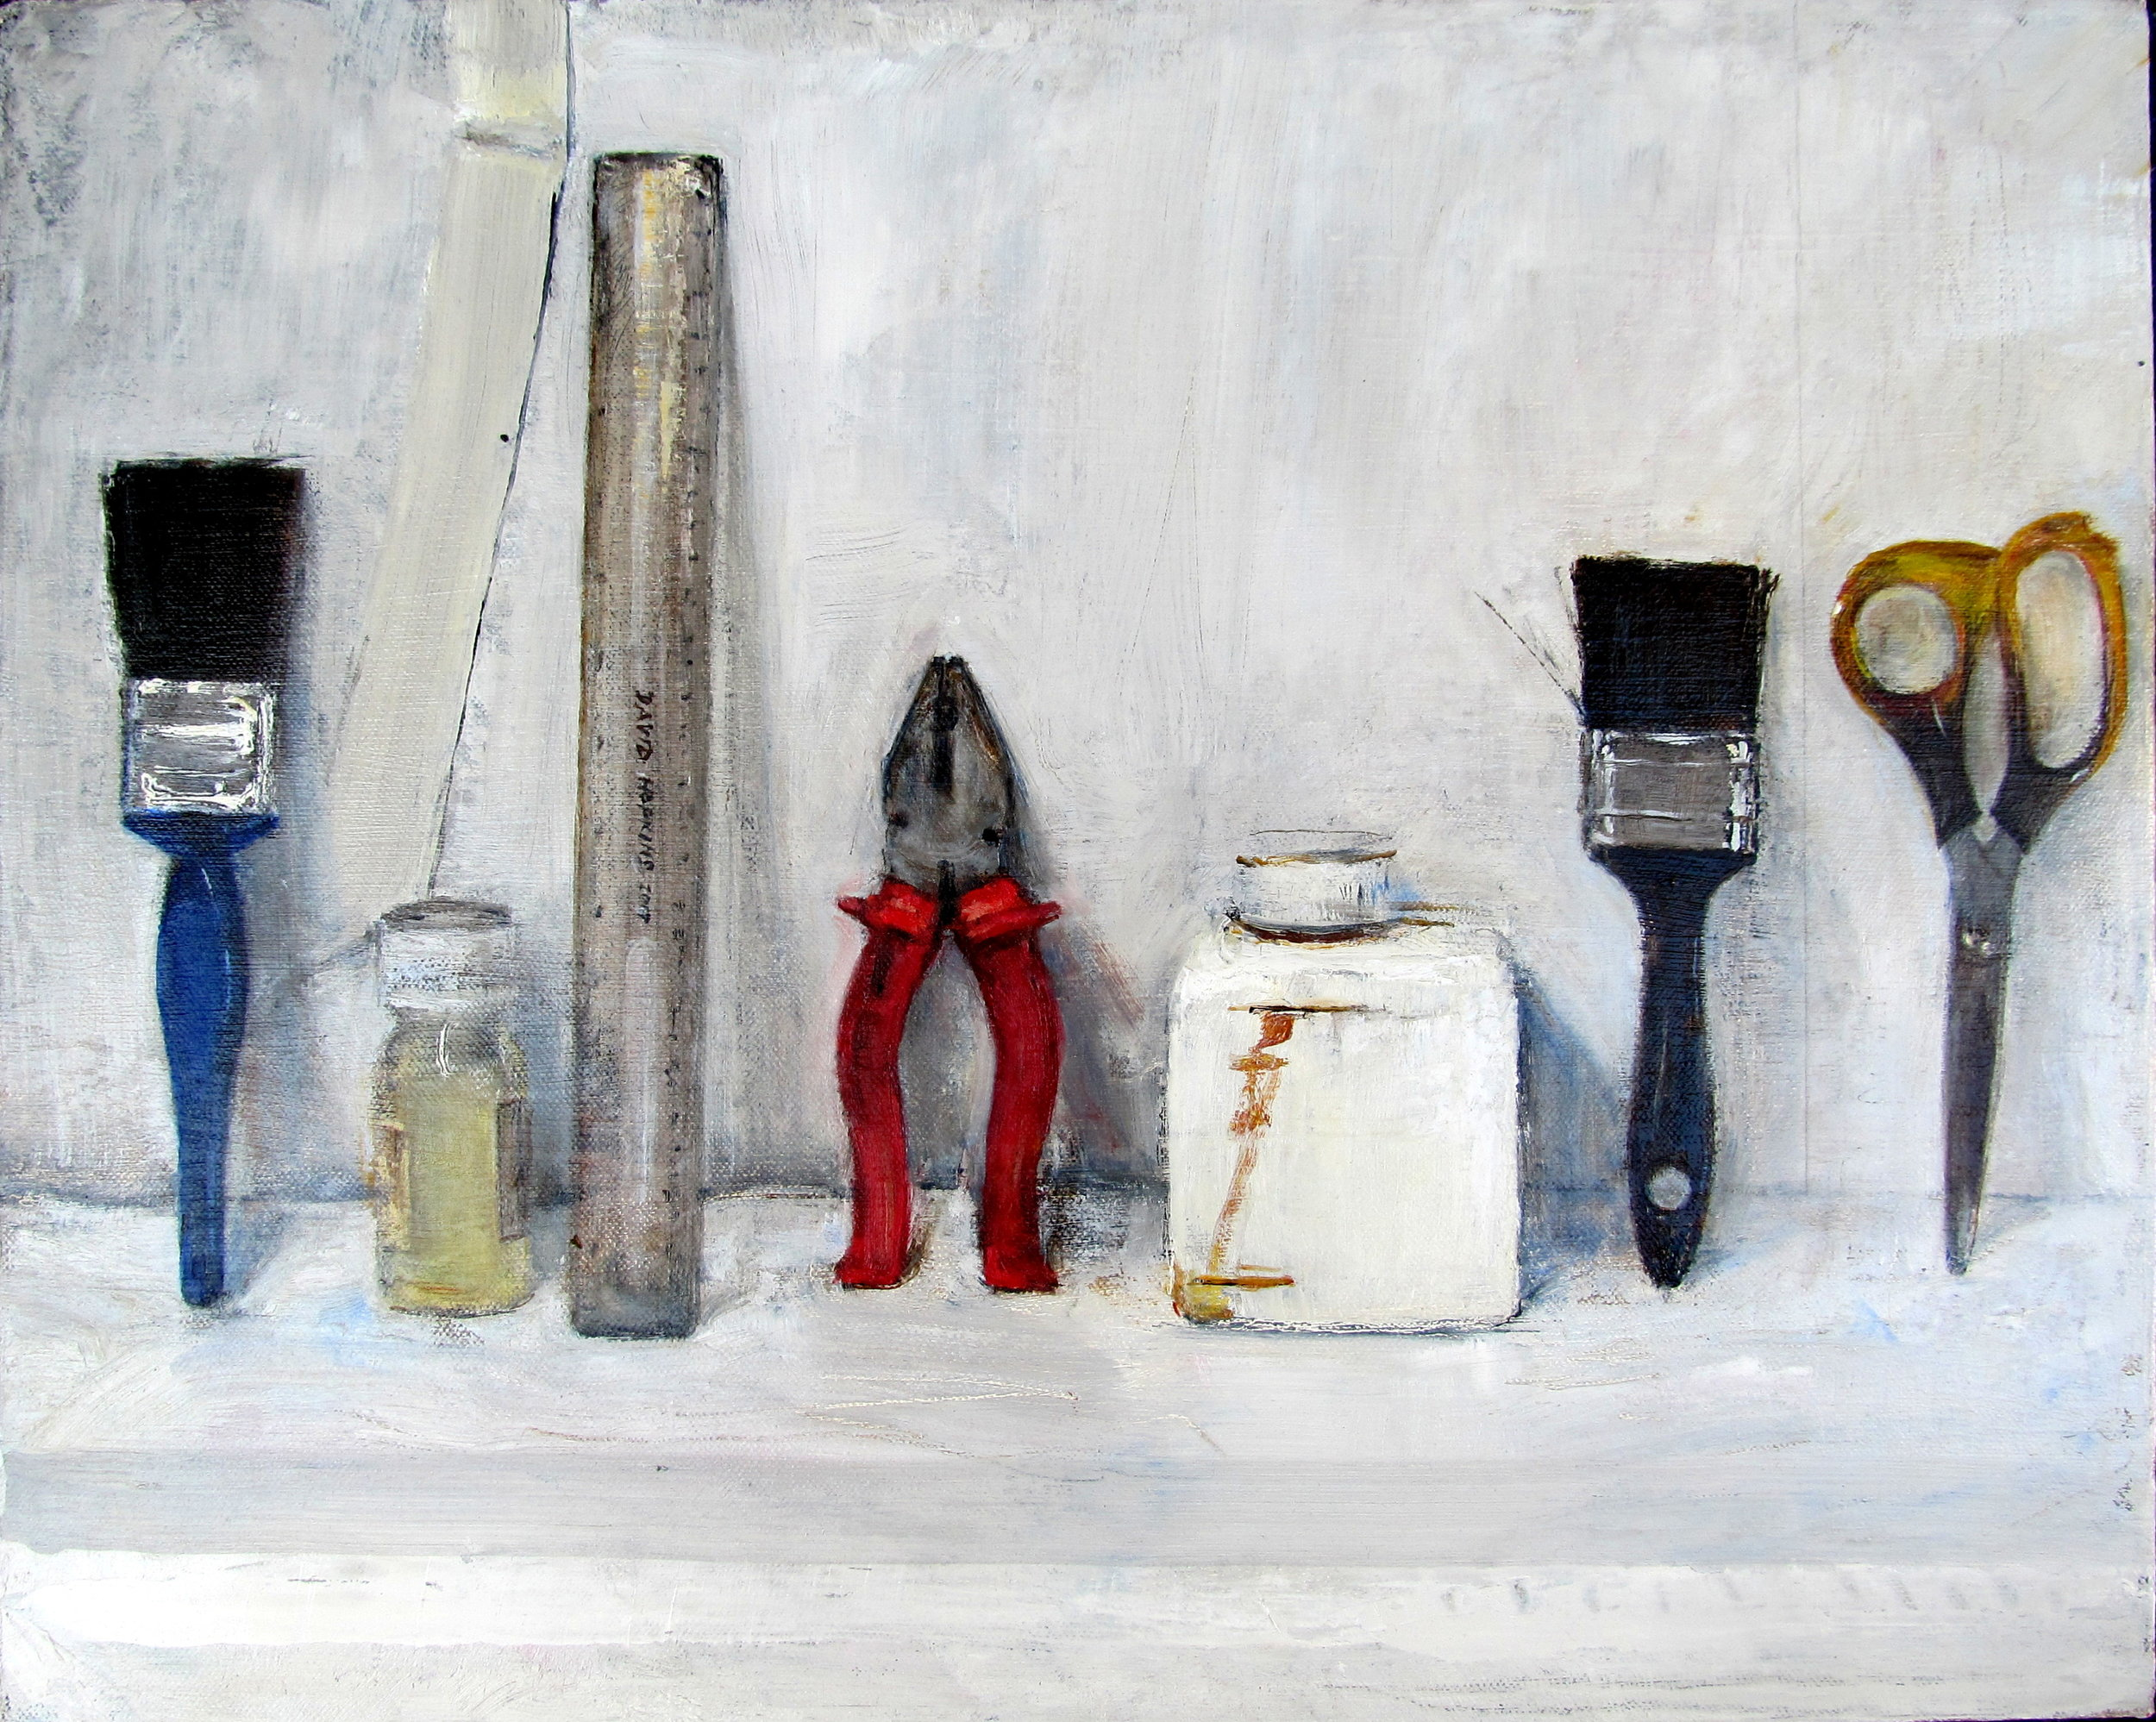 David Hopkins, Victims and Suspects, Oil on canvas, H 40 cm x W 50 cm x D 4 cm,  http://www.davidhopkinspaintings.co.uk